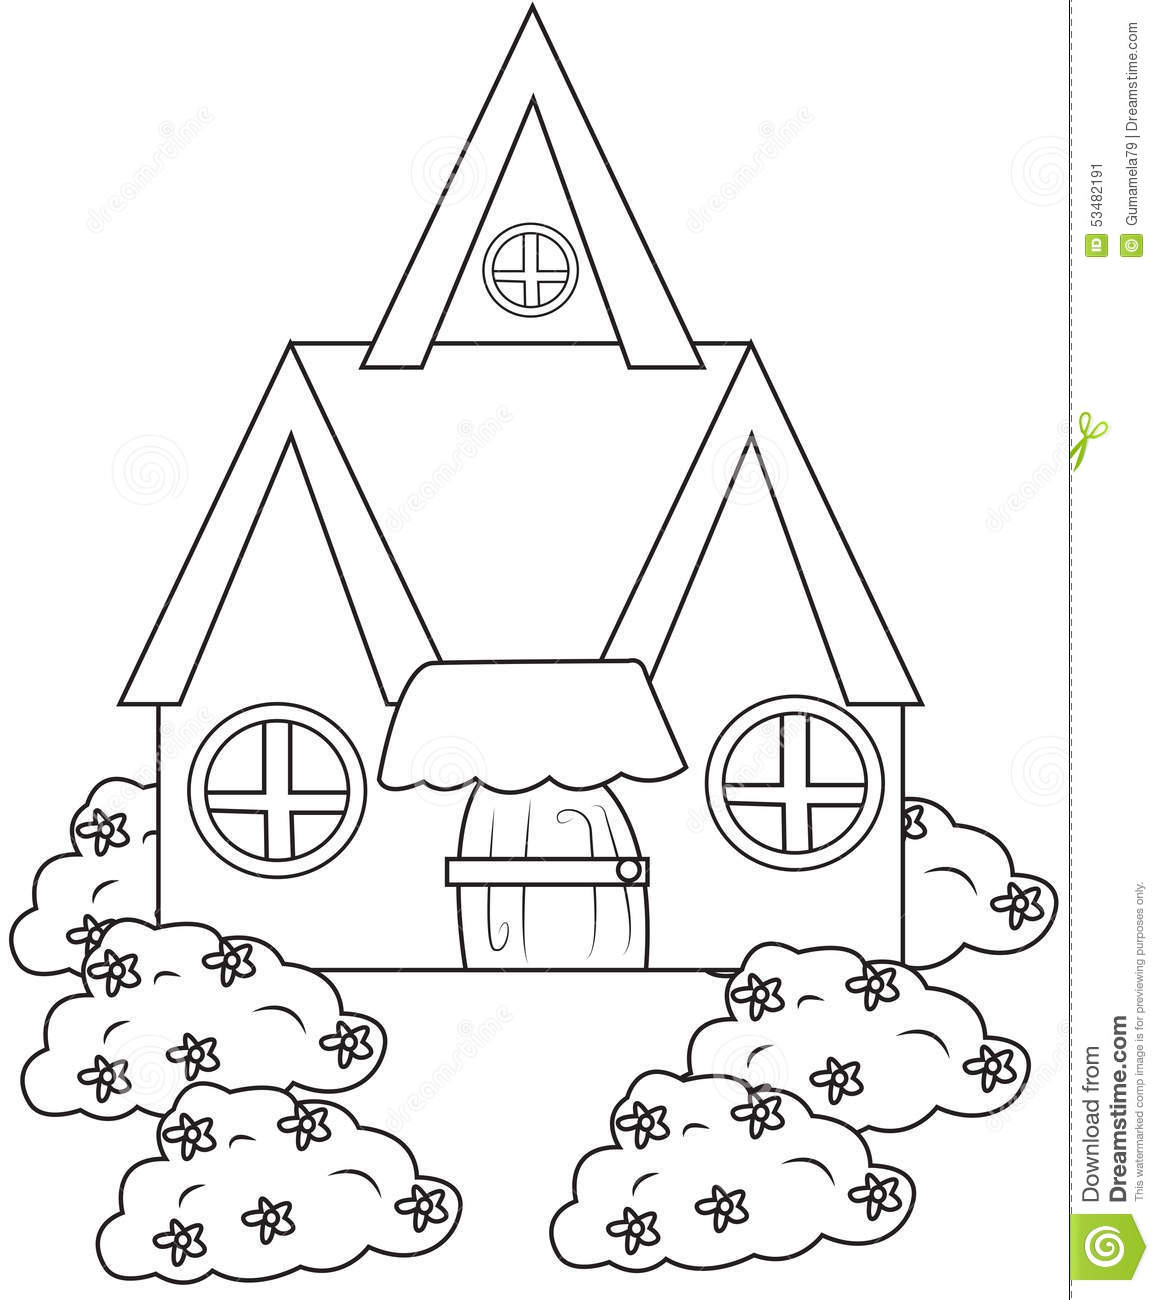 house with plants coloring page stock illustration image 53482191